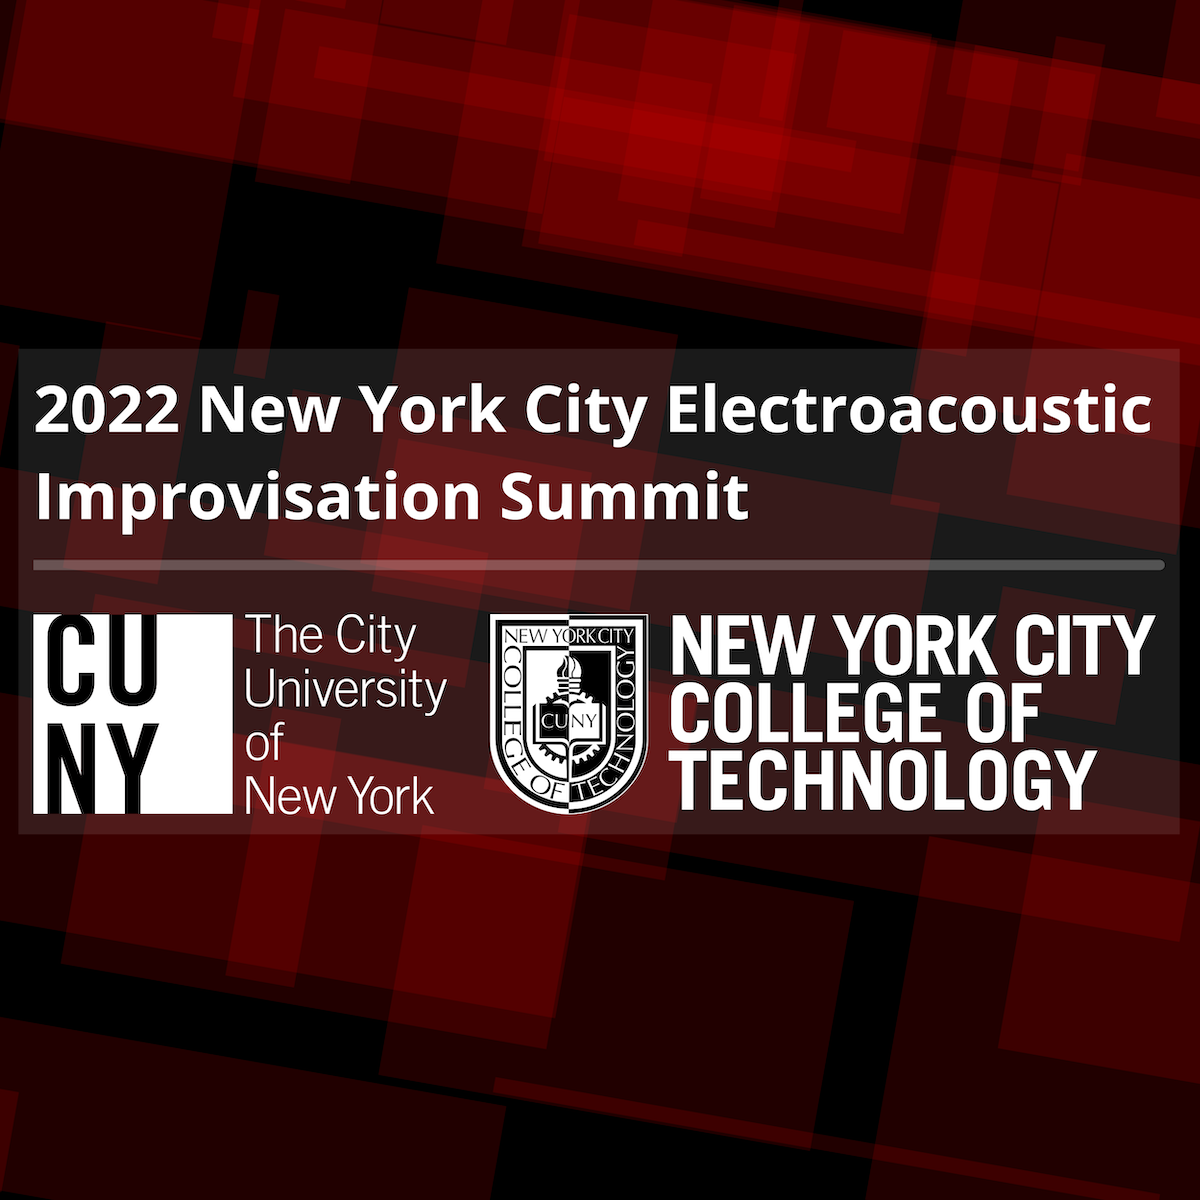 Nyc Eis New York City Electroacoustic Improvisation Summit Electrical Distribution Board Wiring Diagram For Home Tattoos